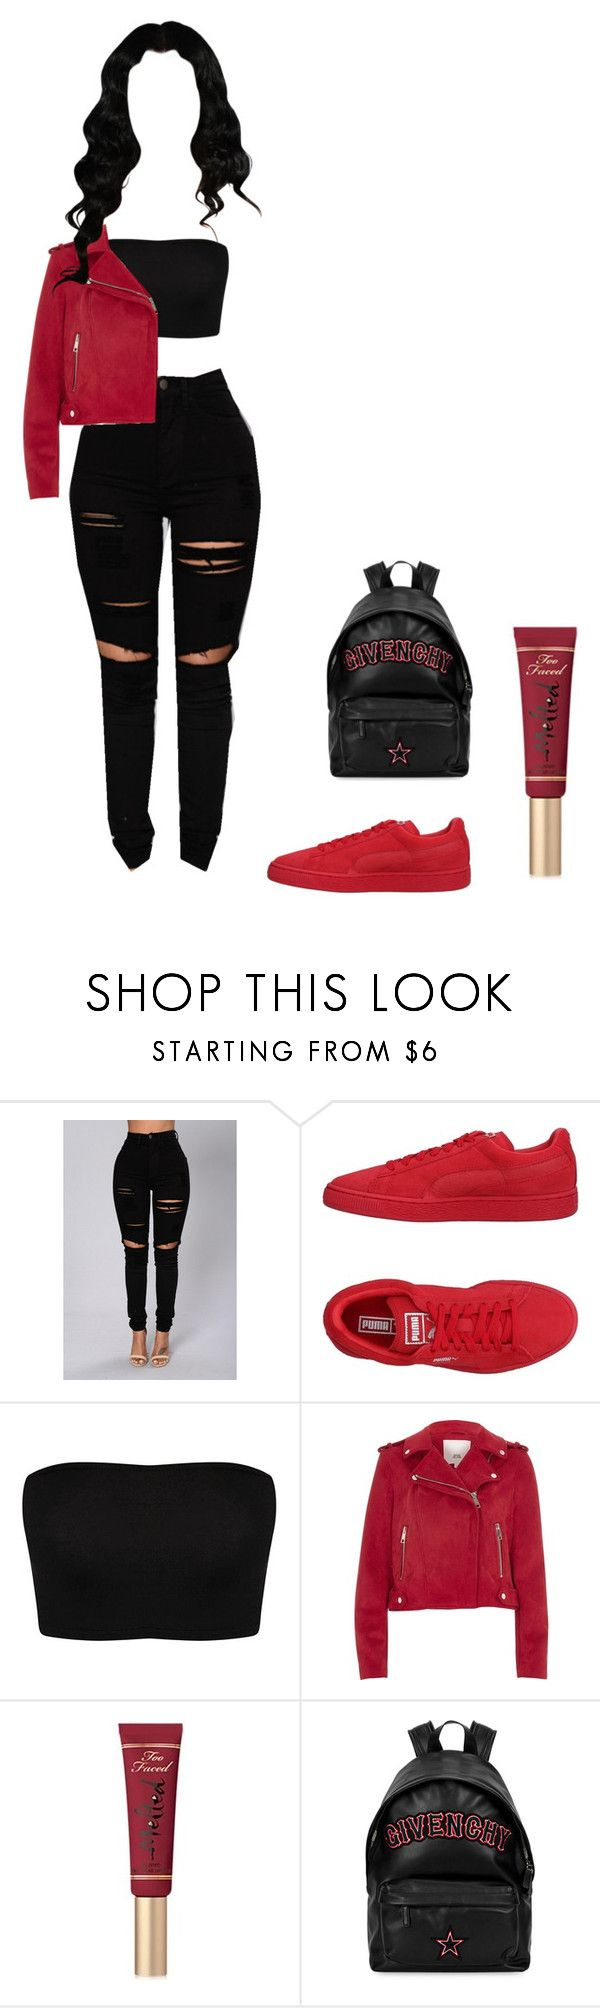 """"""""""" by bodakjello ❤ liked on Polyvore featuring Puma, River Island, Too Faced Cosmetics and Givenchy"""